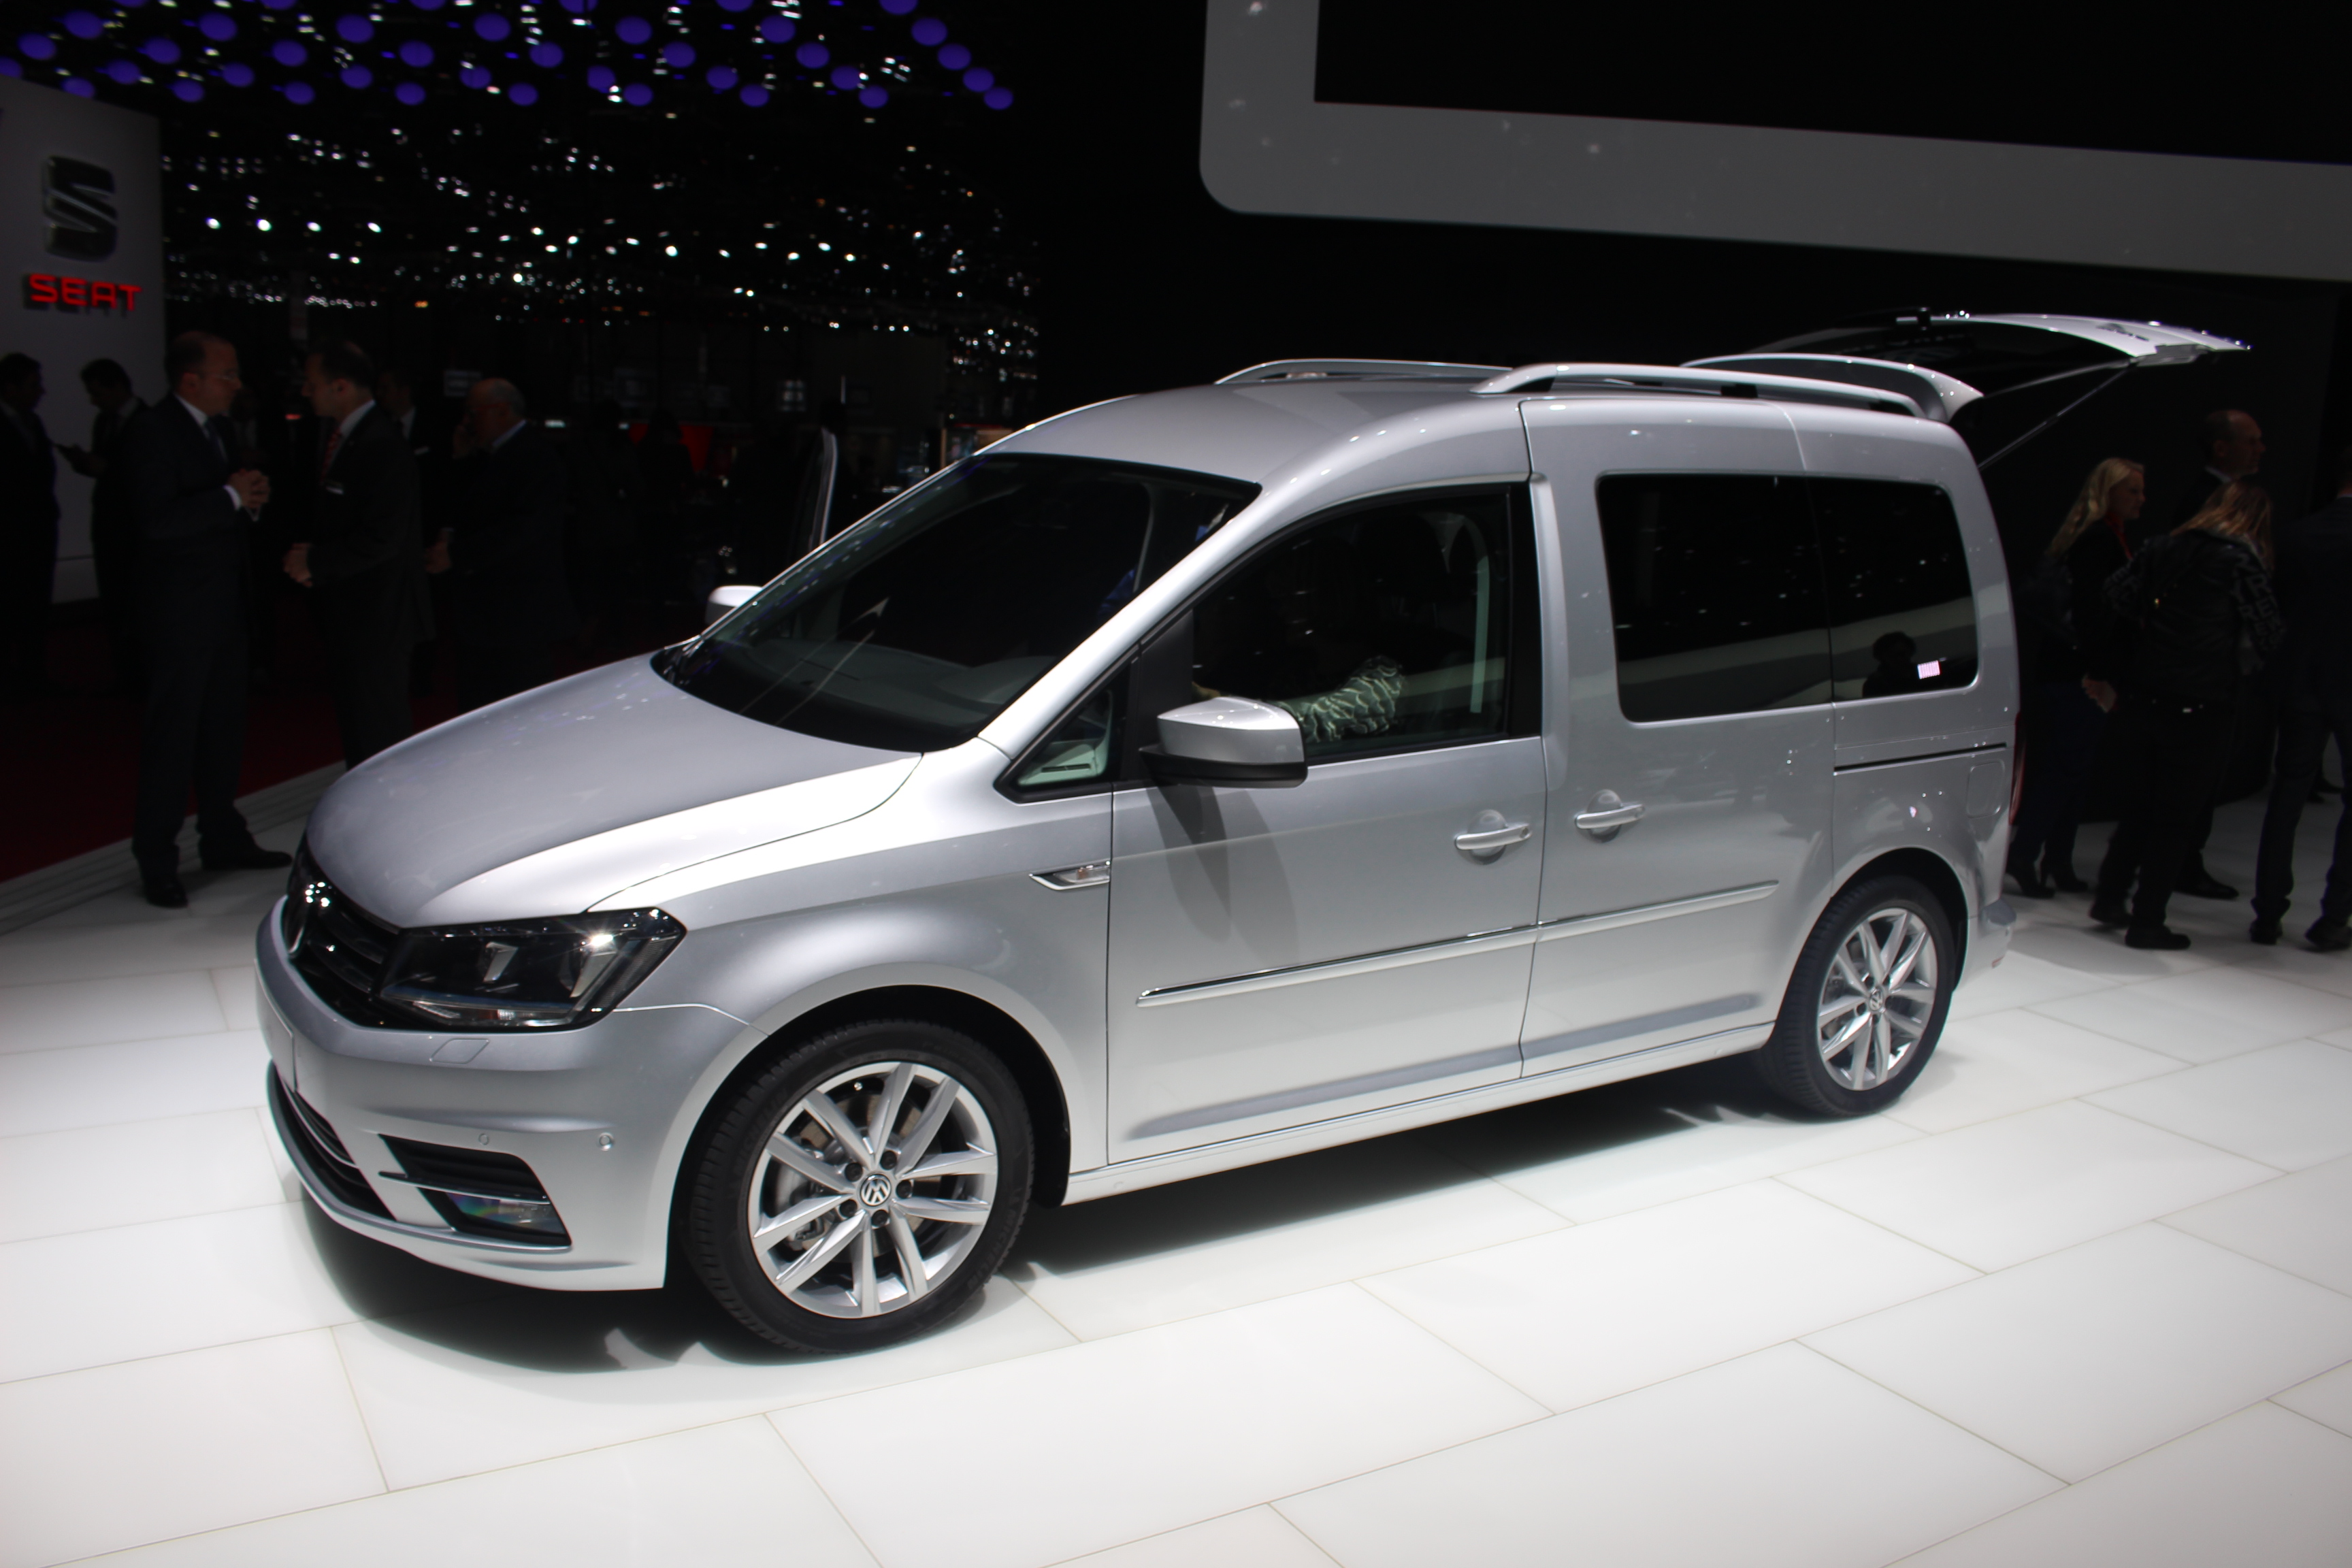 Volkswagen Caddy 7 Places : volkswagen caddy maxi 7 places en direct du salon de gen ve 2015 ~ Gottalentnigeria.com Avis de Voitures